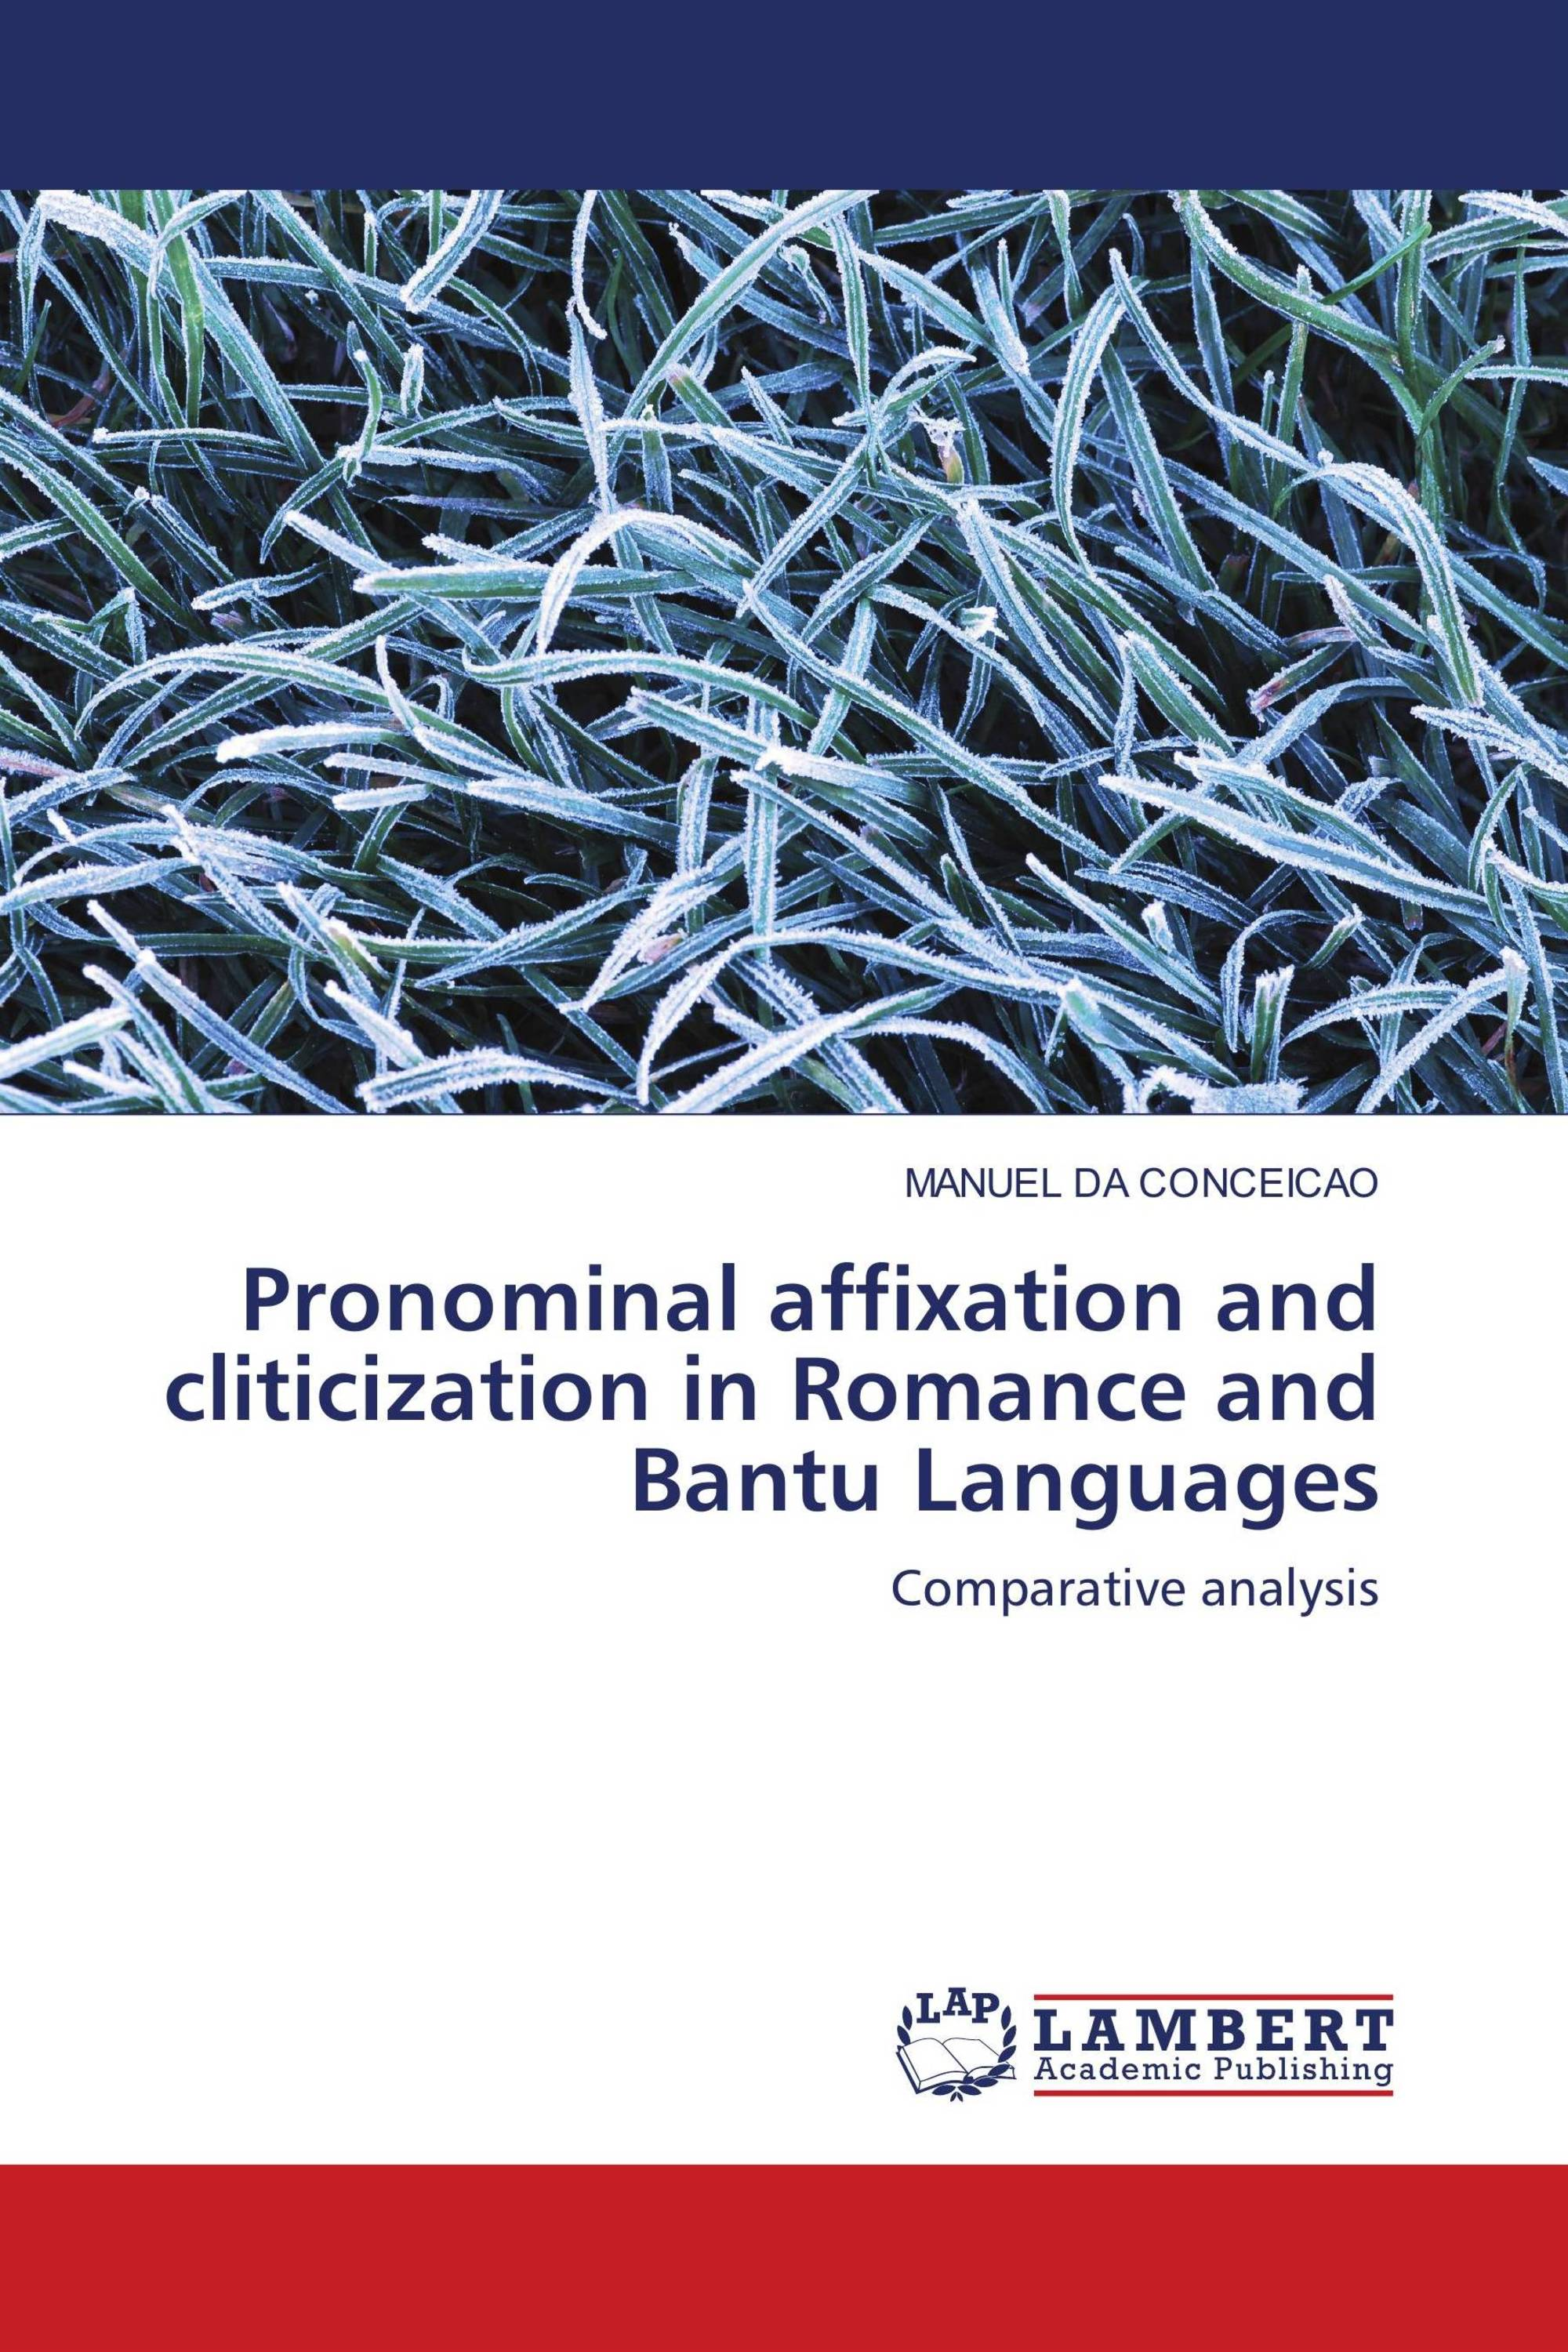 Pronominal affixation and cliticization in Romance and Bantu Languages